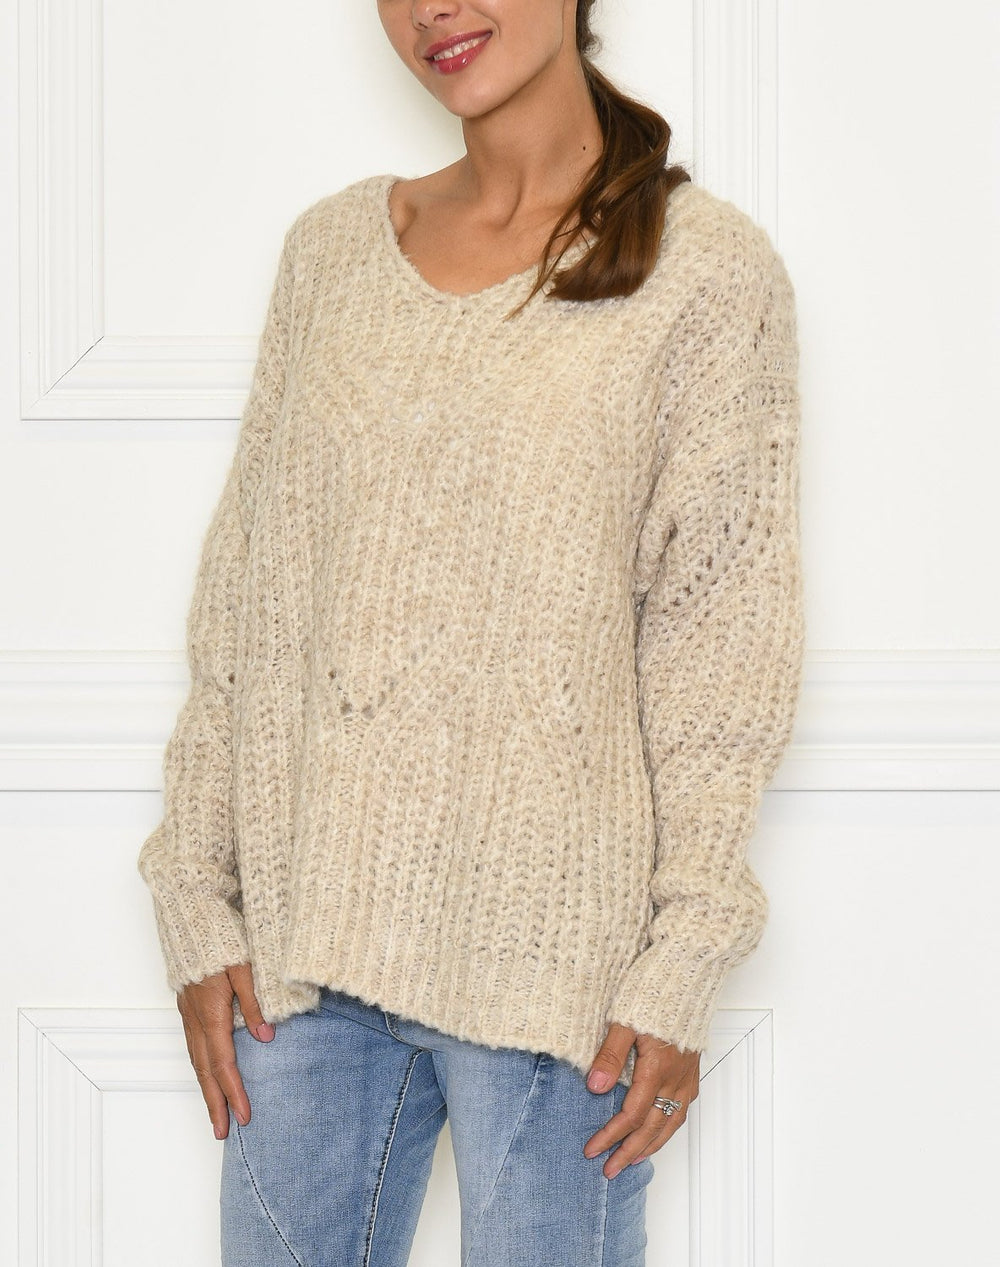 Culture CUbojanna Pullover Irish cream - Online-Mode